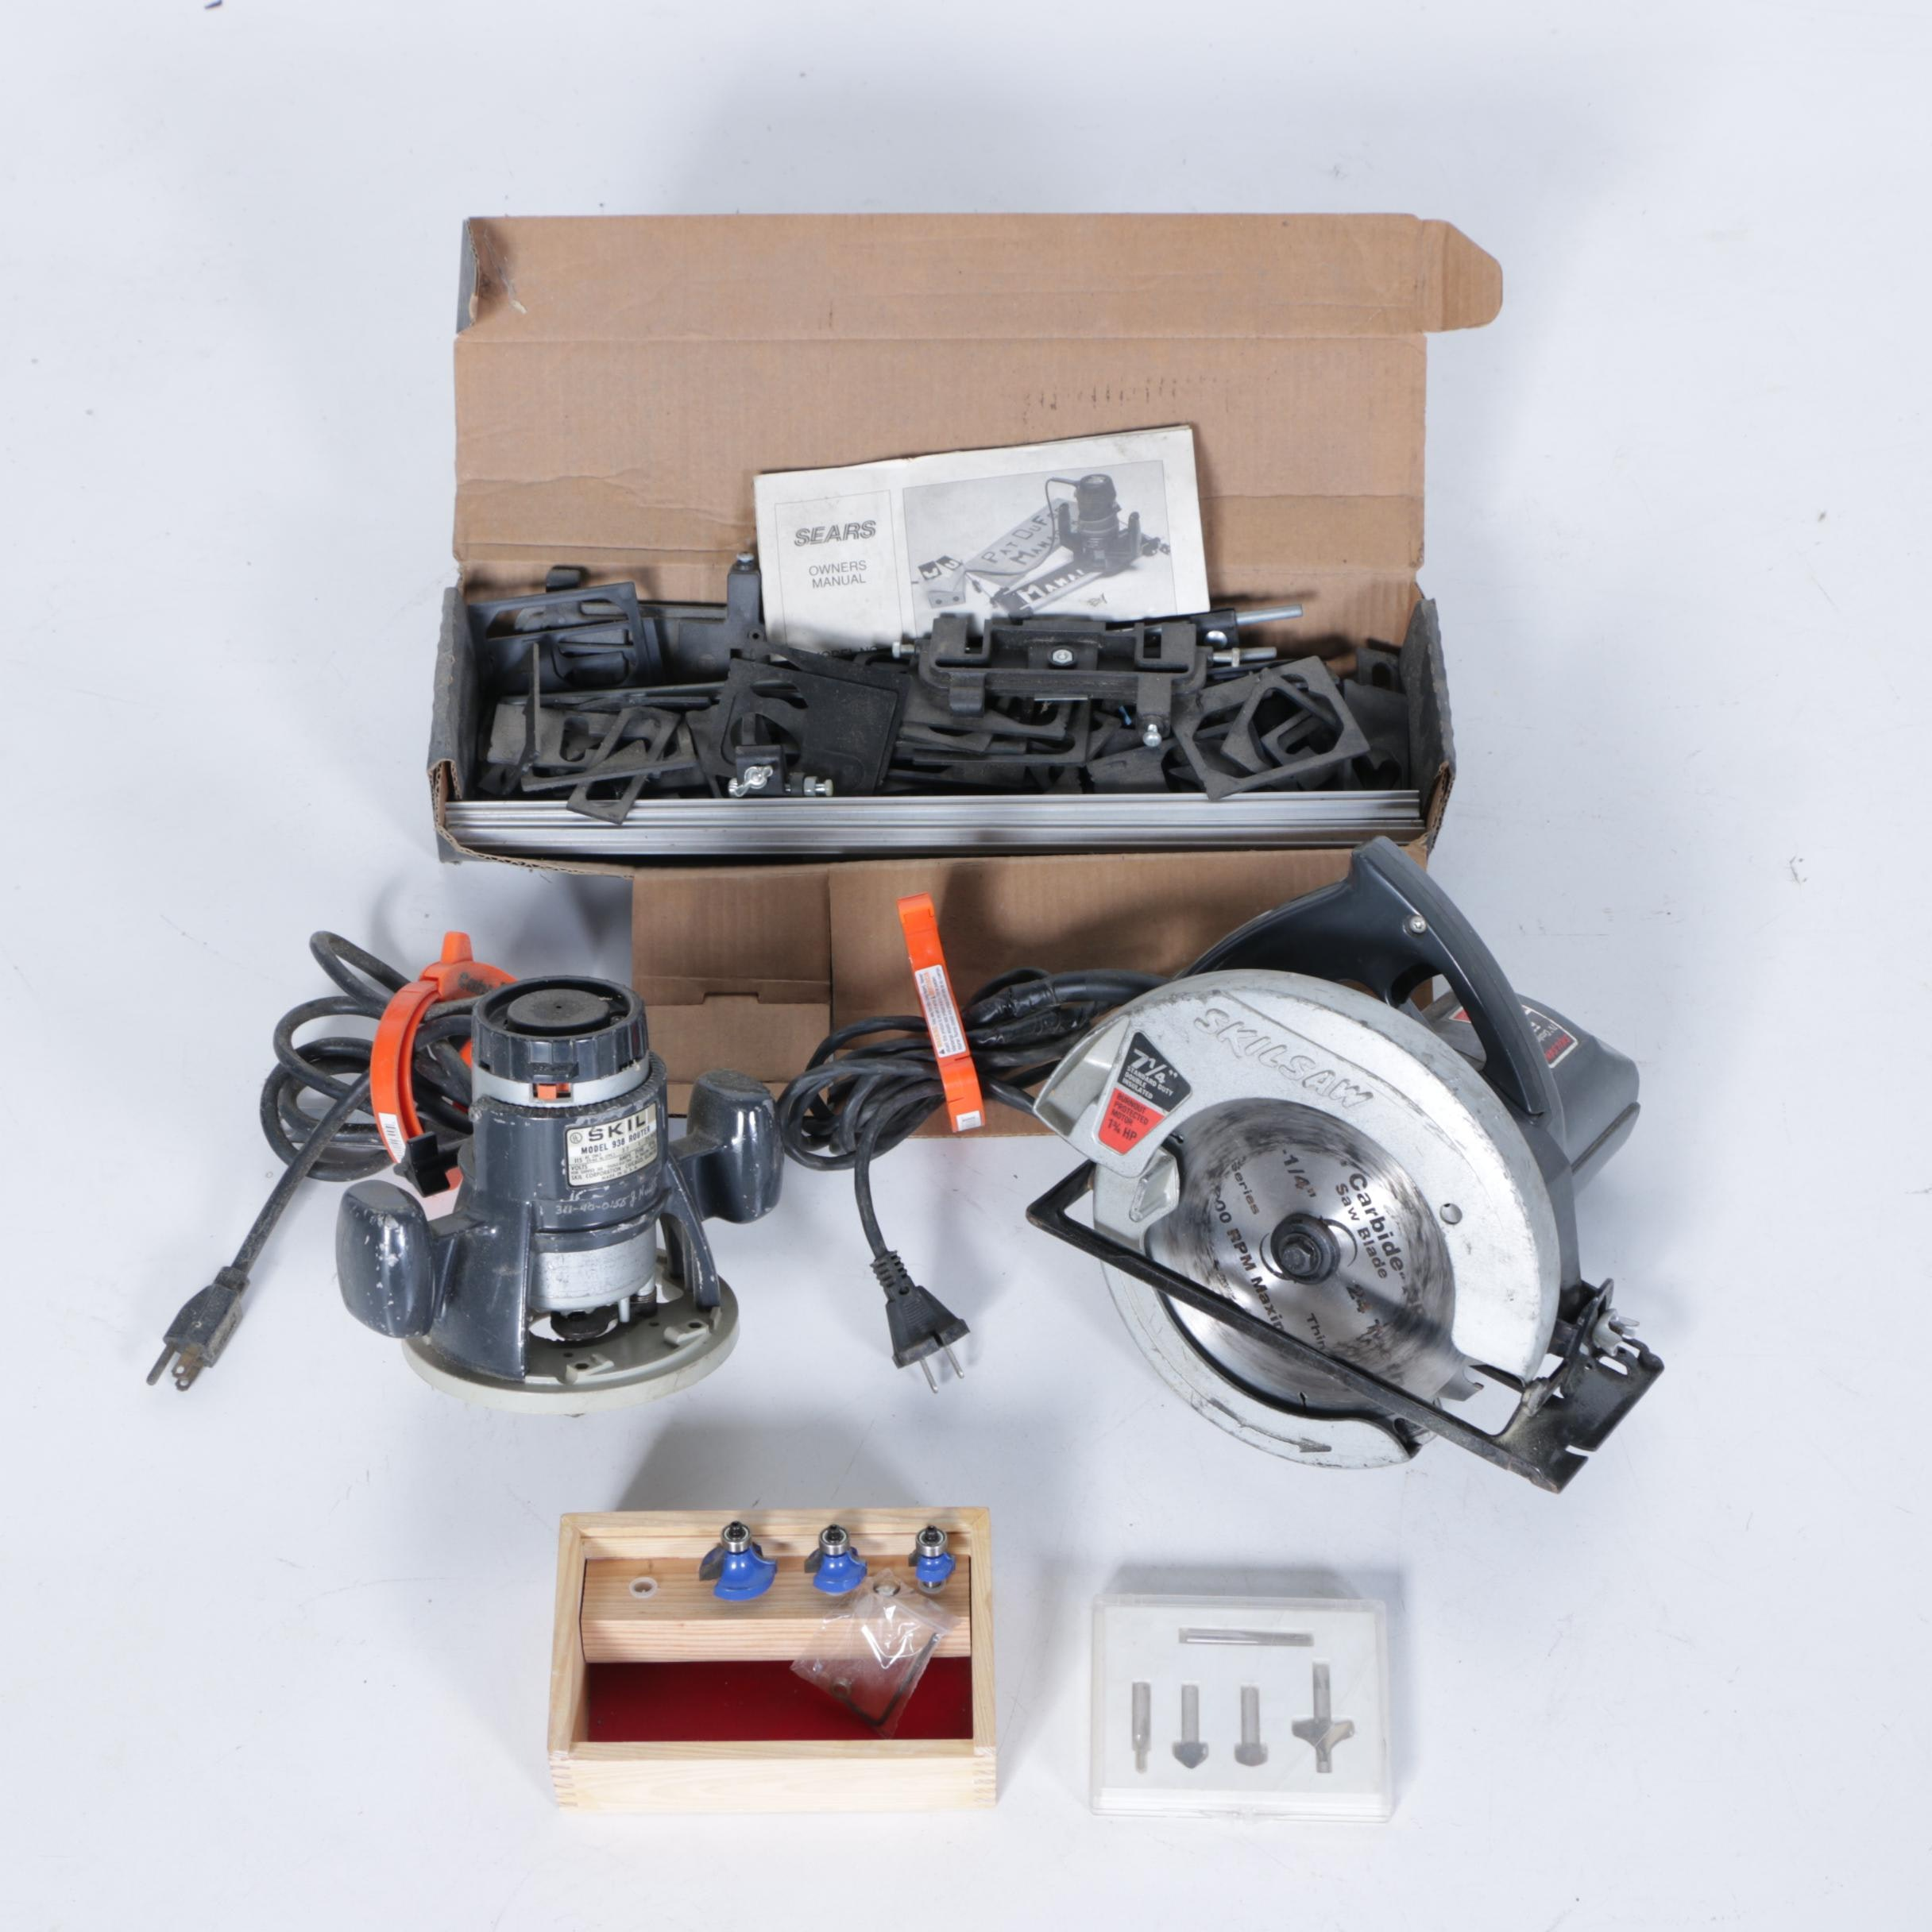 Skilsaw Model 5Z4 Circular Saw, Model 938 Router and Accessories